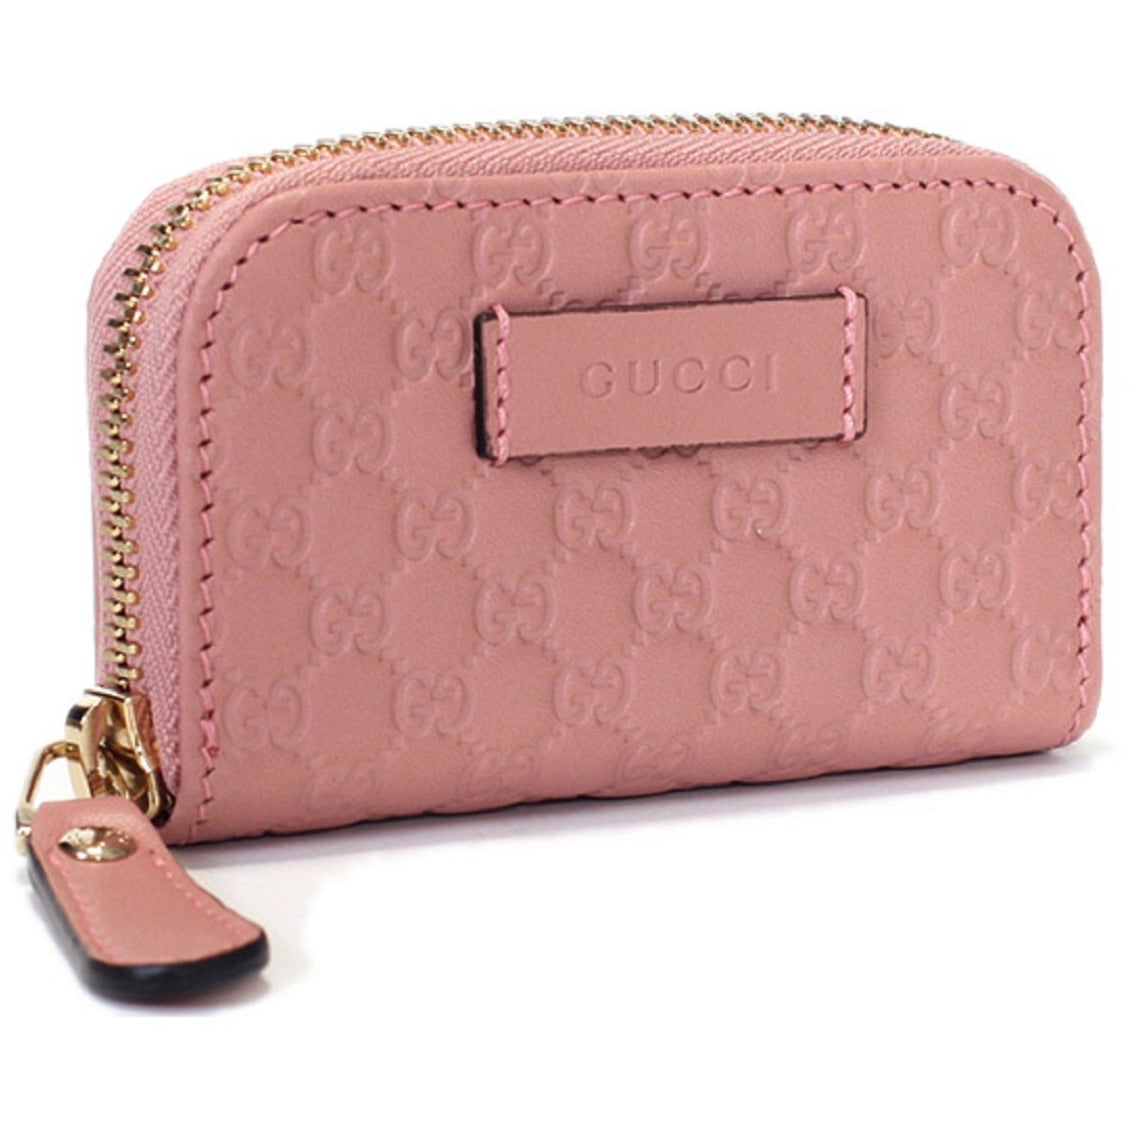 Gucci Womens Soft Pink Microguccissima Soft Leather Zip Wallet 449896